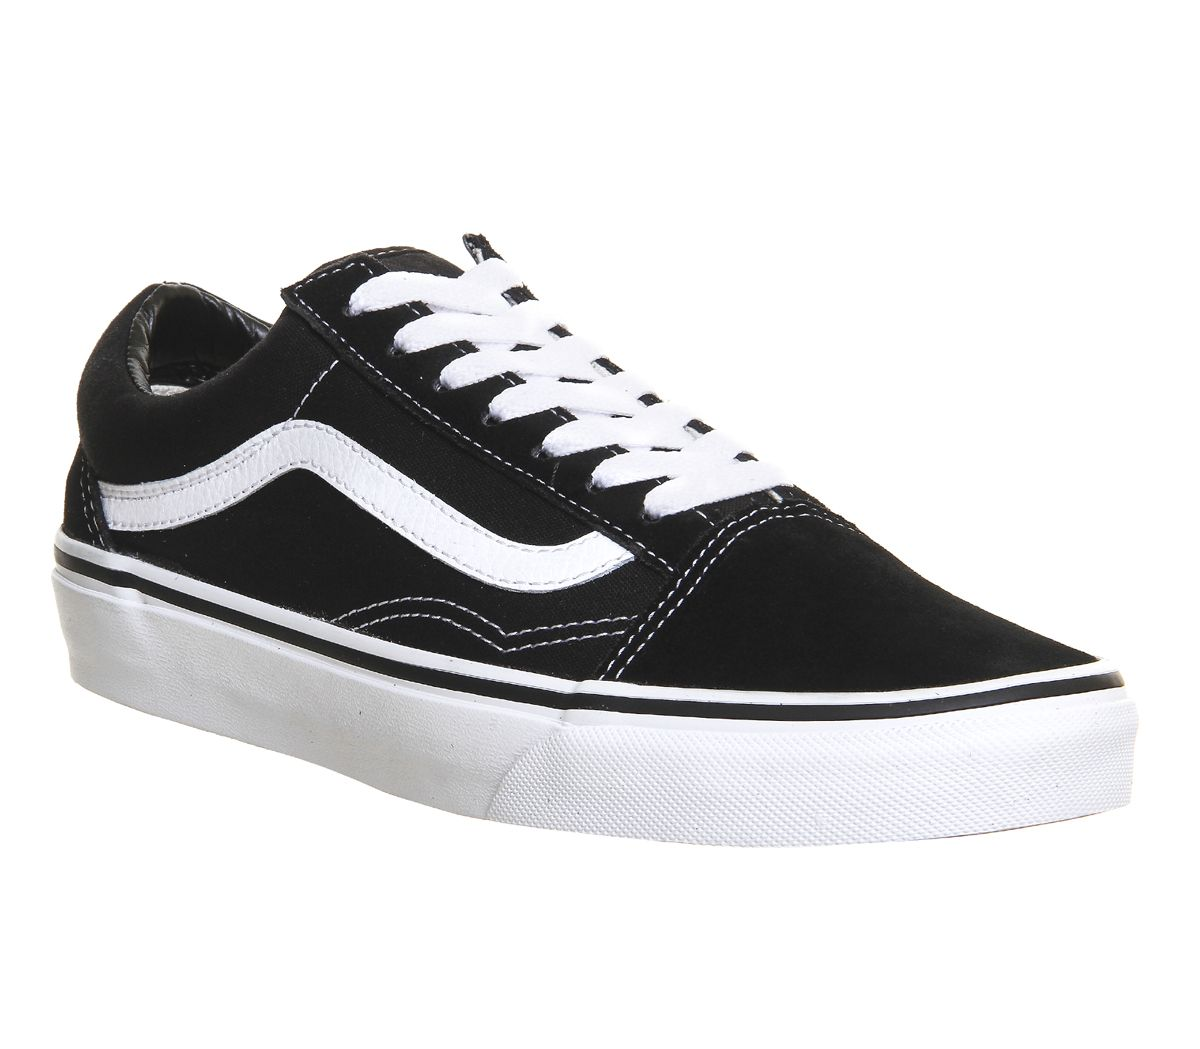 a96282c65f Vans Old Skool Trainers Black - Unisex Sports